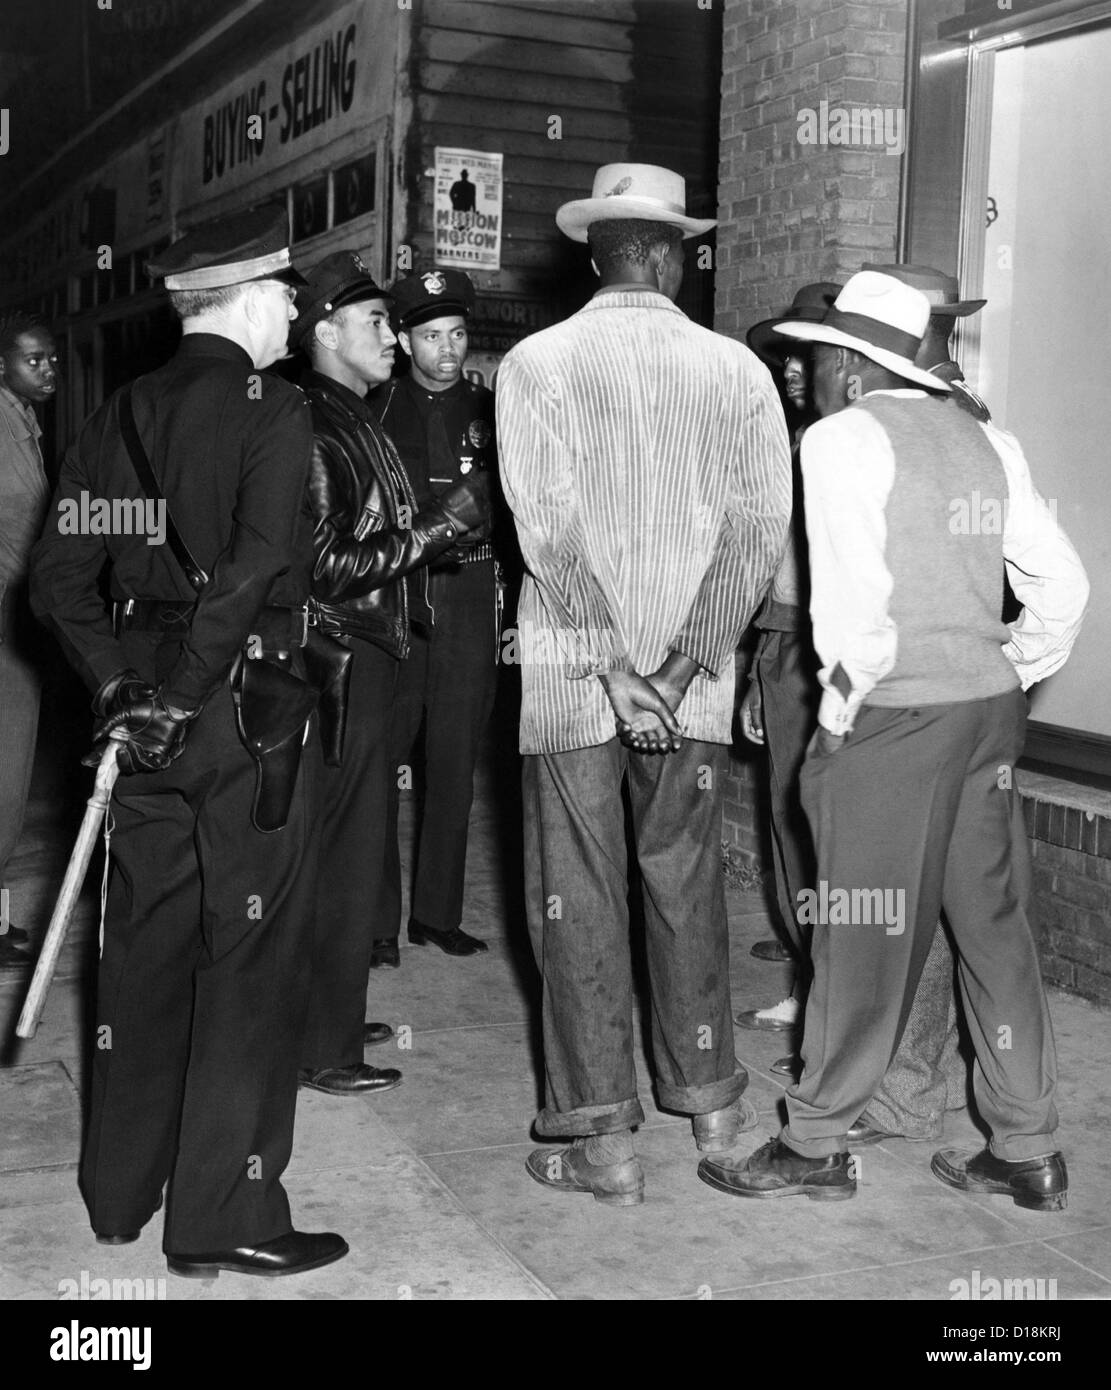 Zoot Suit Riots in Los Angeles. Police examine the draft credentials of some African American men. June 11, 1943. - Stock Image